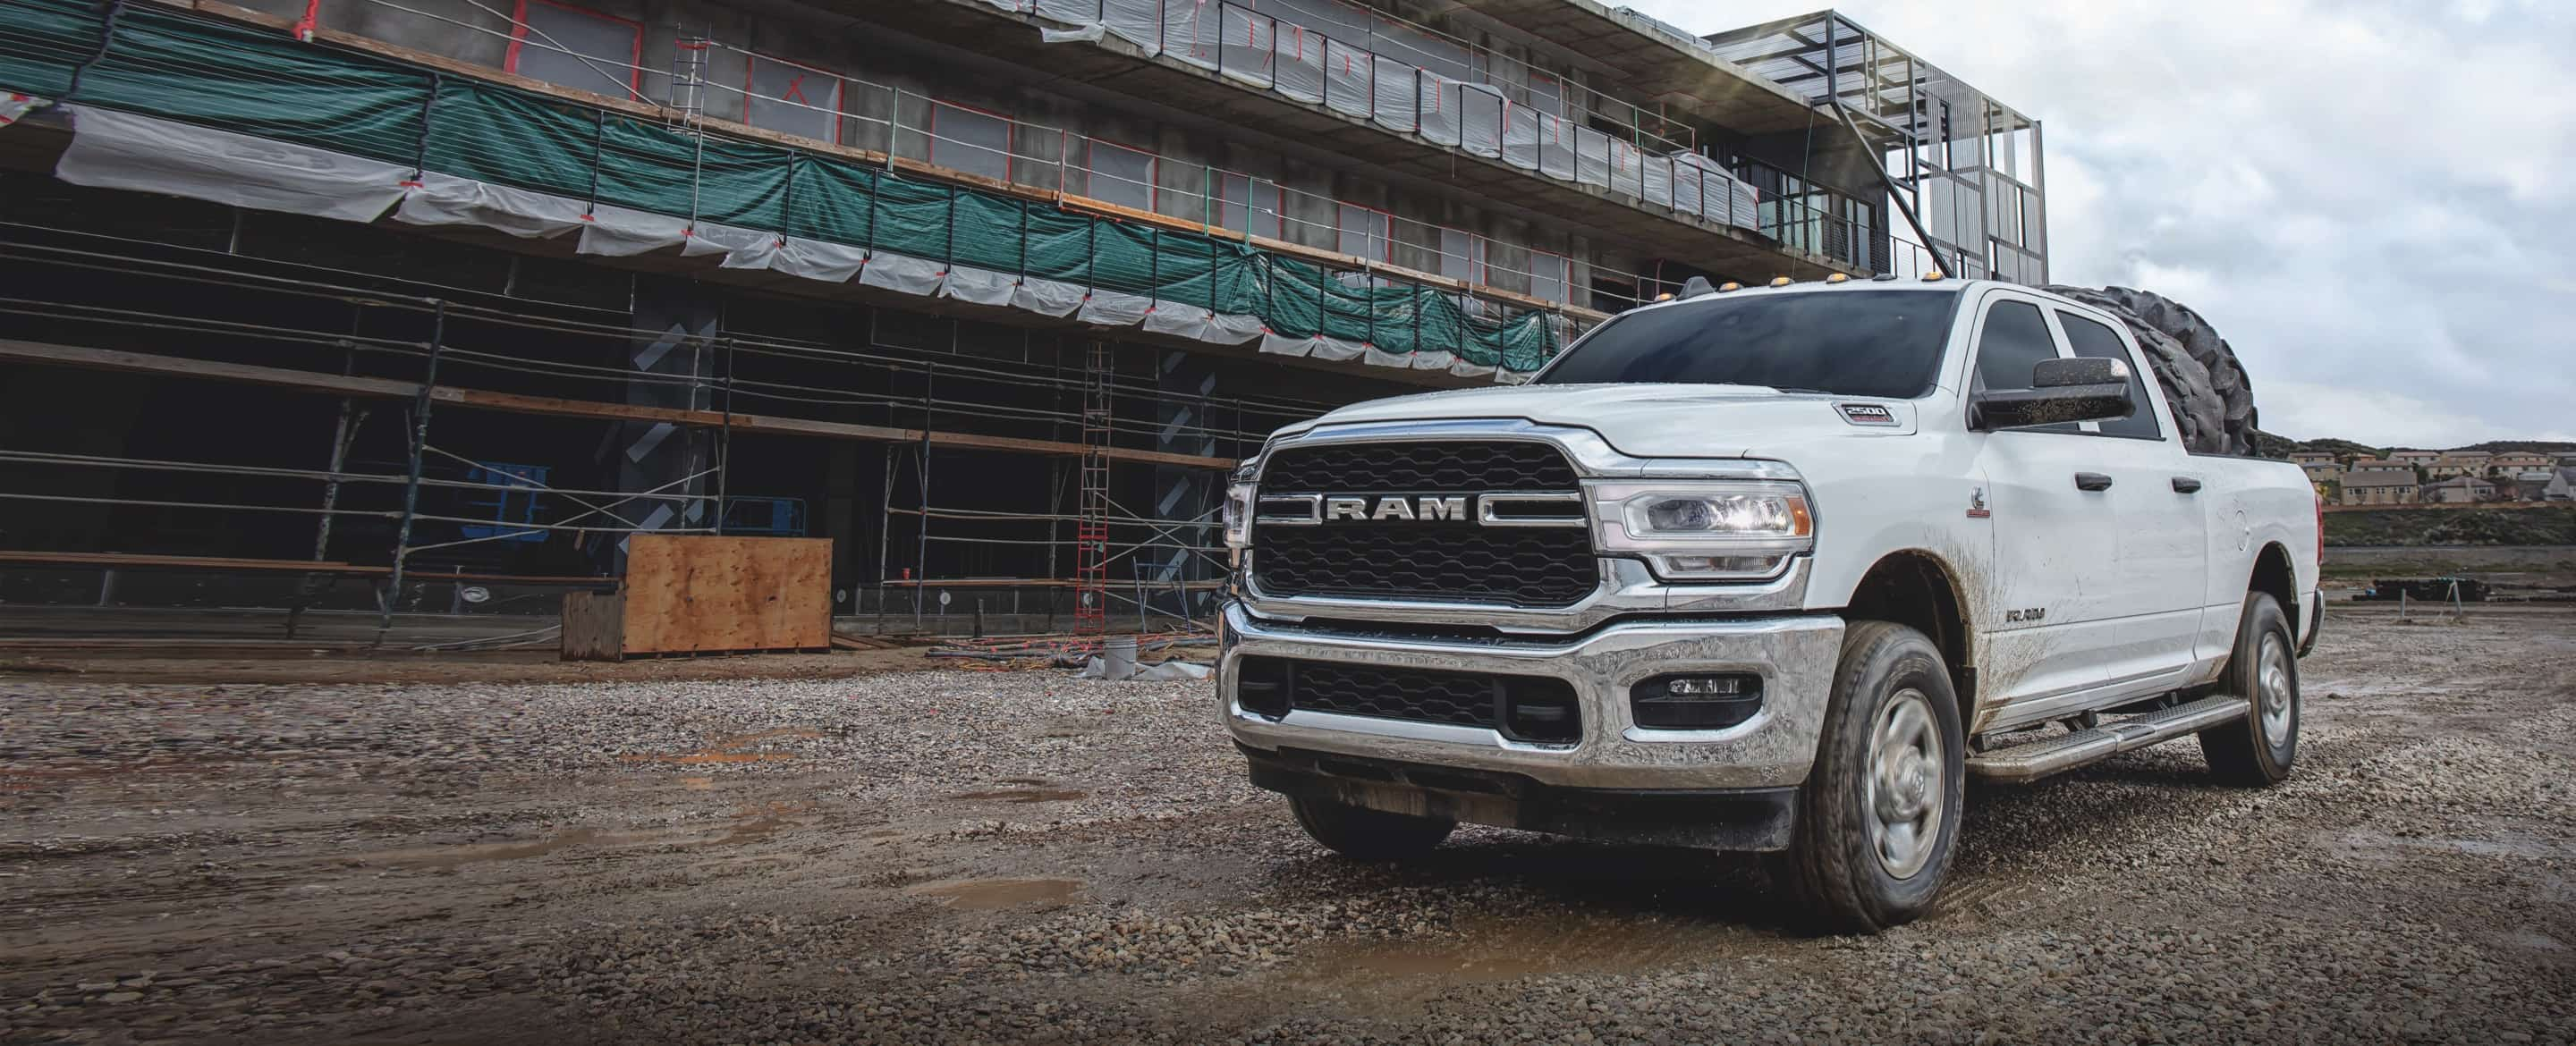 A 2020 Ram 2500 parked on a construction site with its pickup bed loaded with tires.